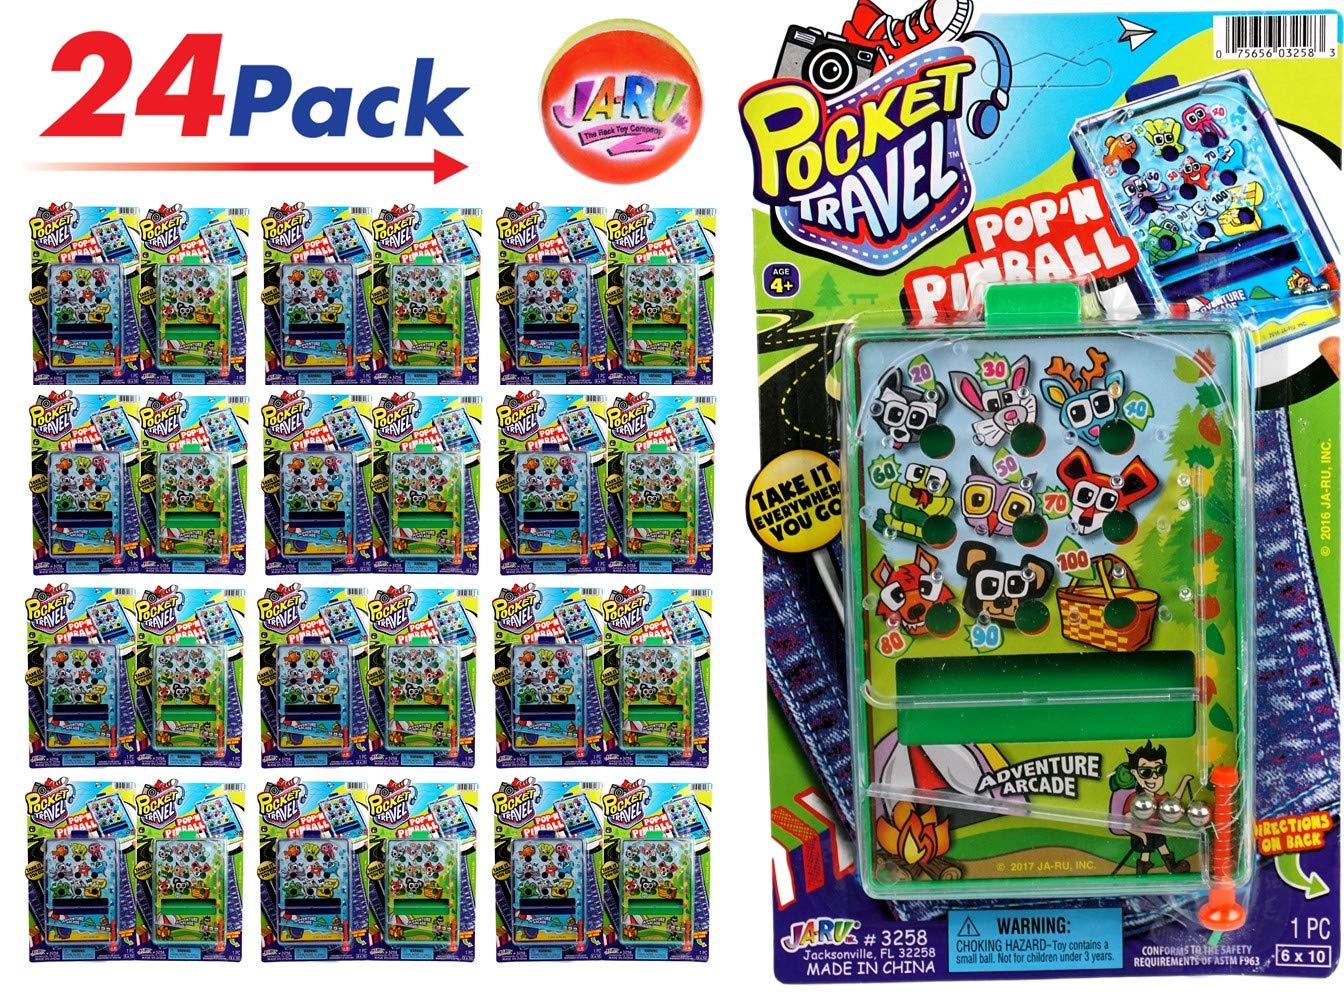 JA-RU Pinball Pocket Travel Game (24 Units) and one Bouncy Ball Item #3258-24p